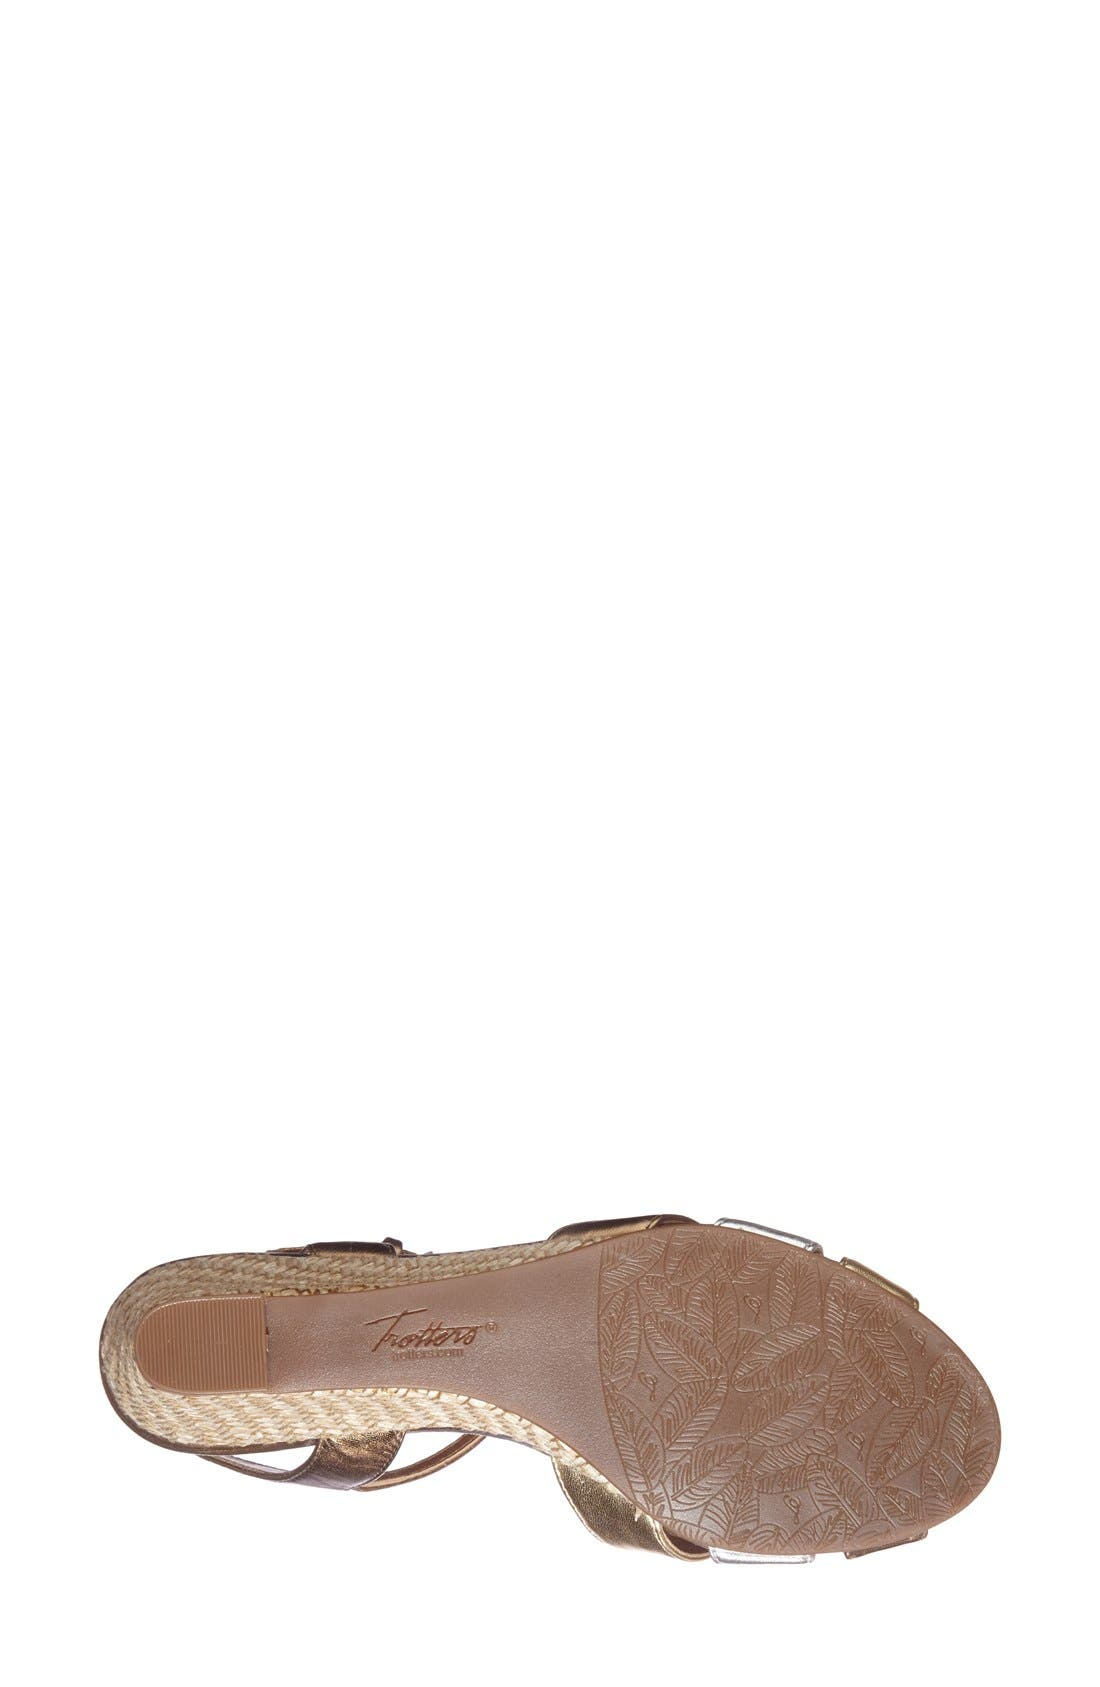 'Mickey' Wedge Sandal,                             Alternate thumbnail 41, color,